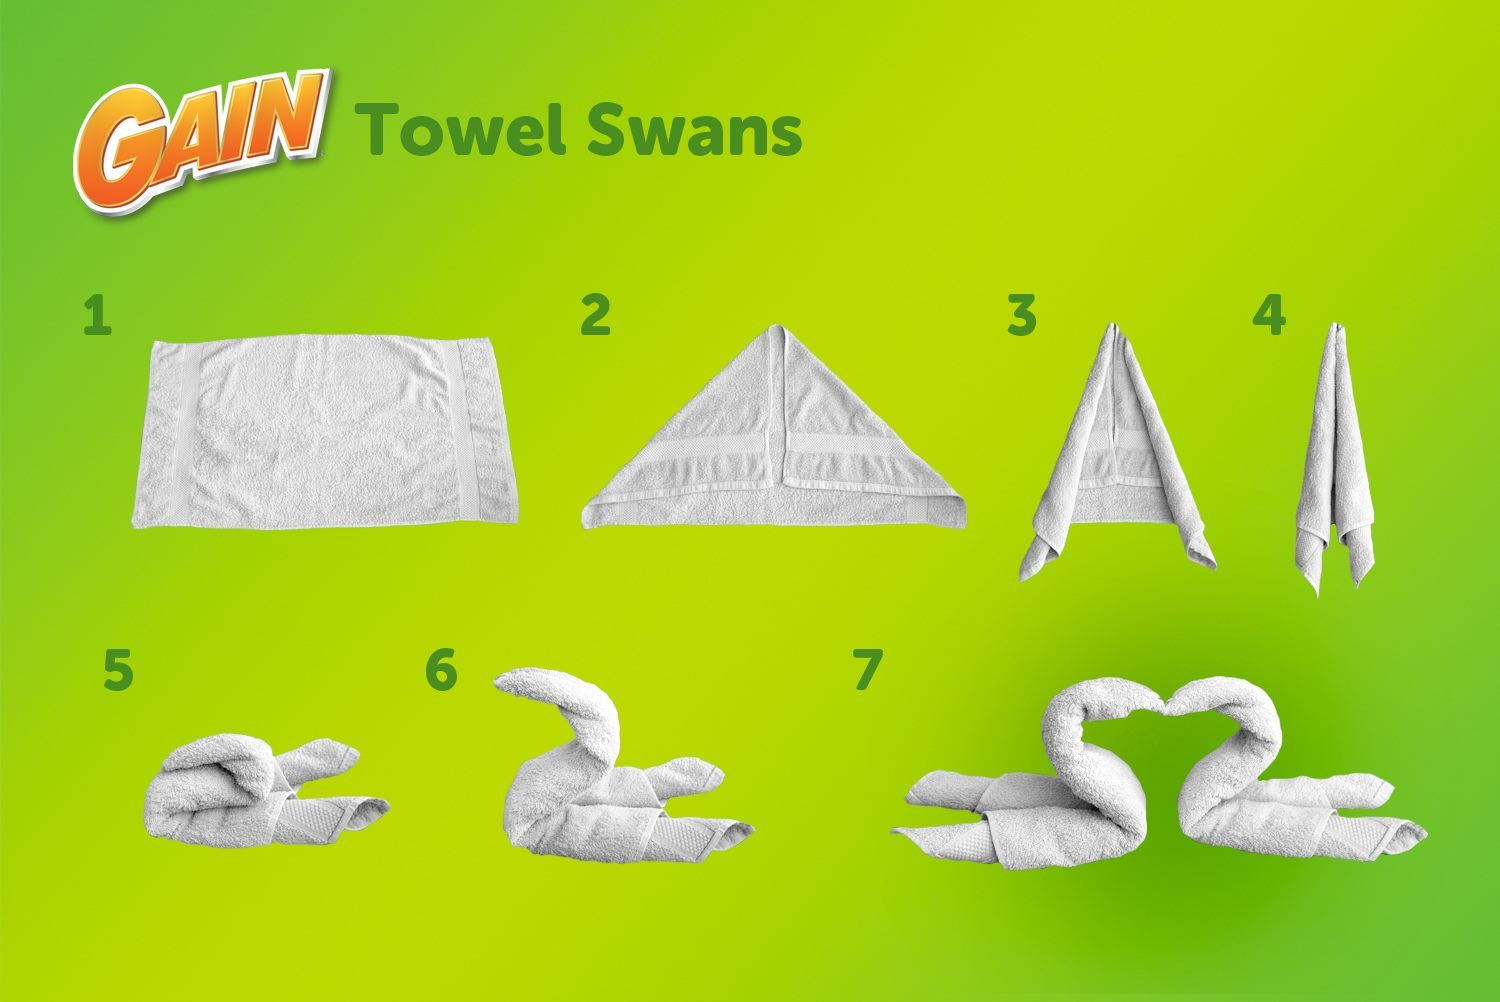 How to Make an Easy Origami Swan | Origami easy, Origami swan ... | 1002x1500